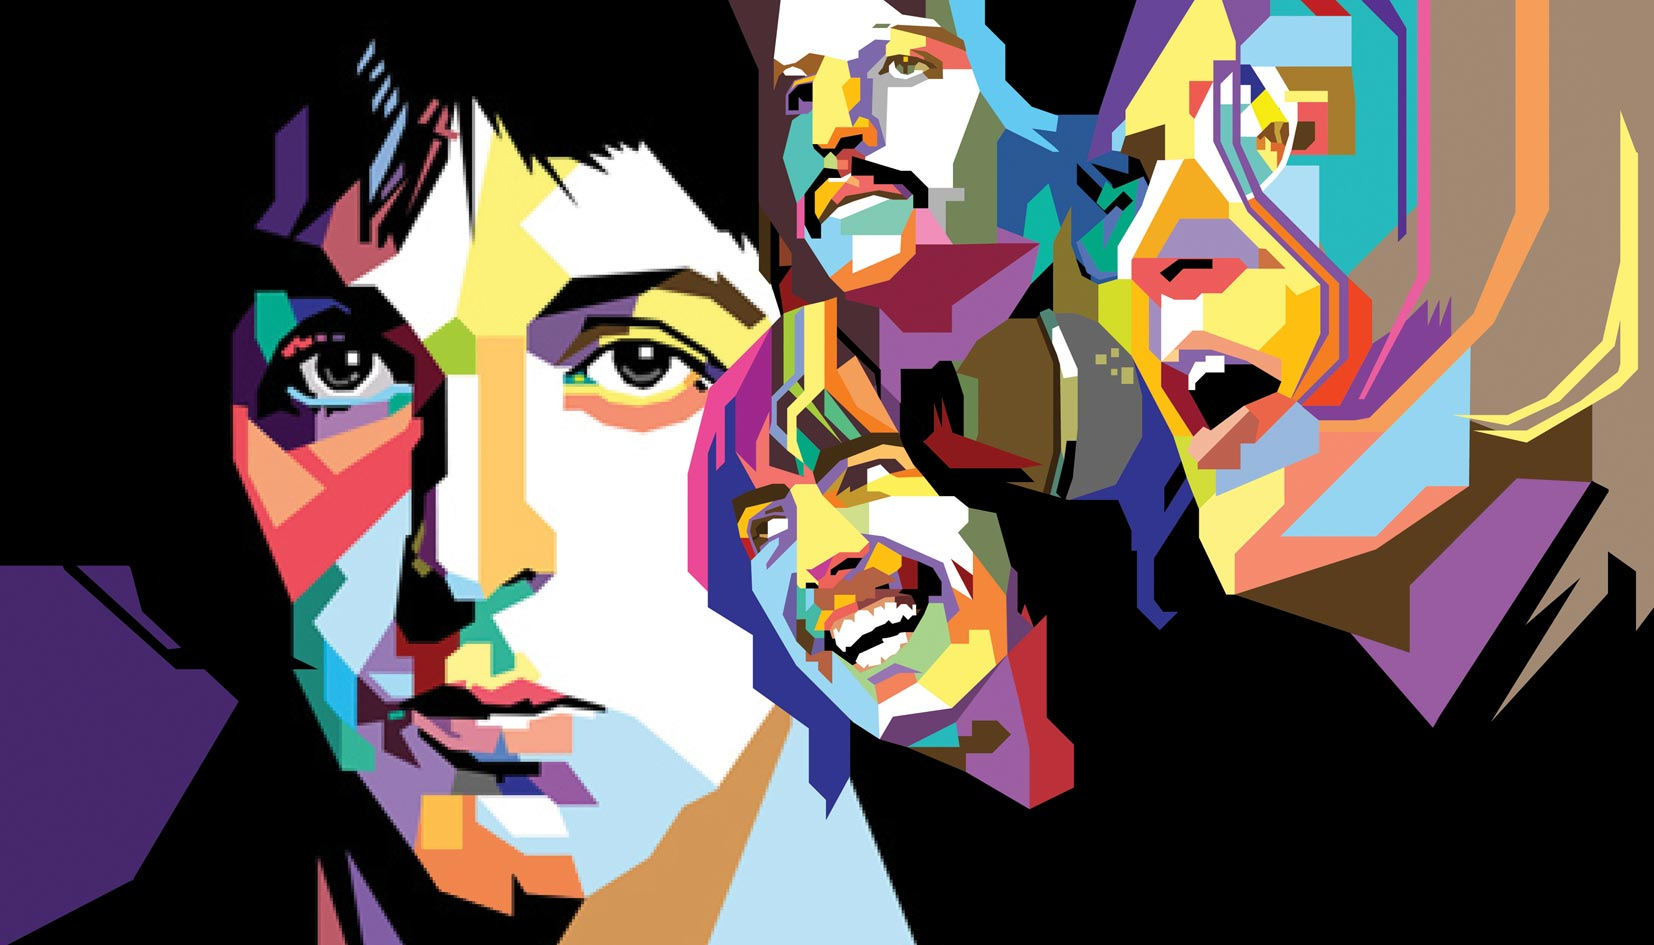 Find Out More About WPAP Art